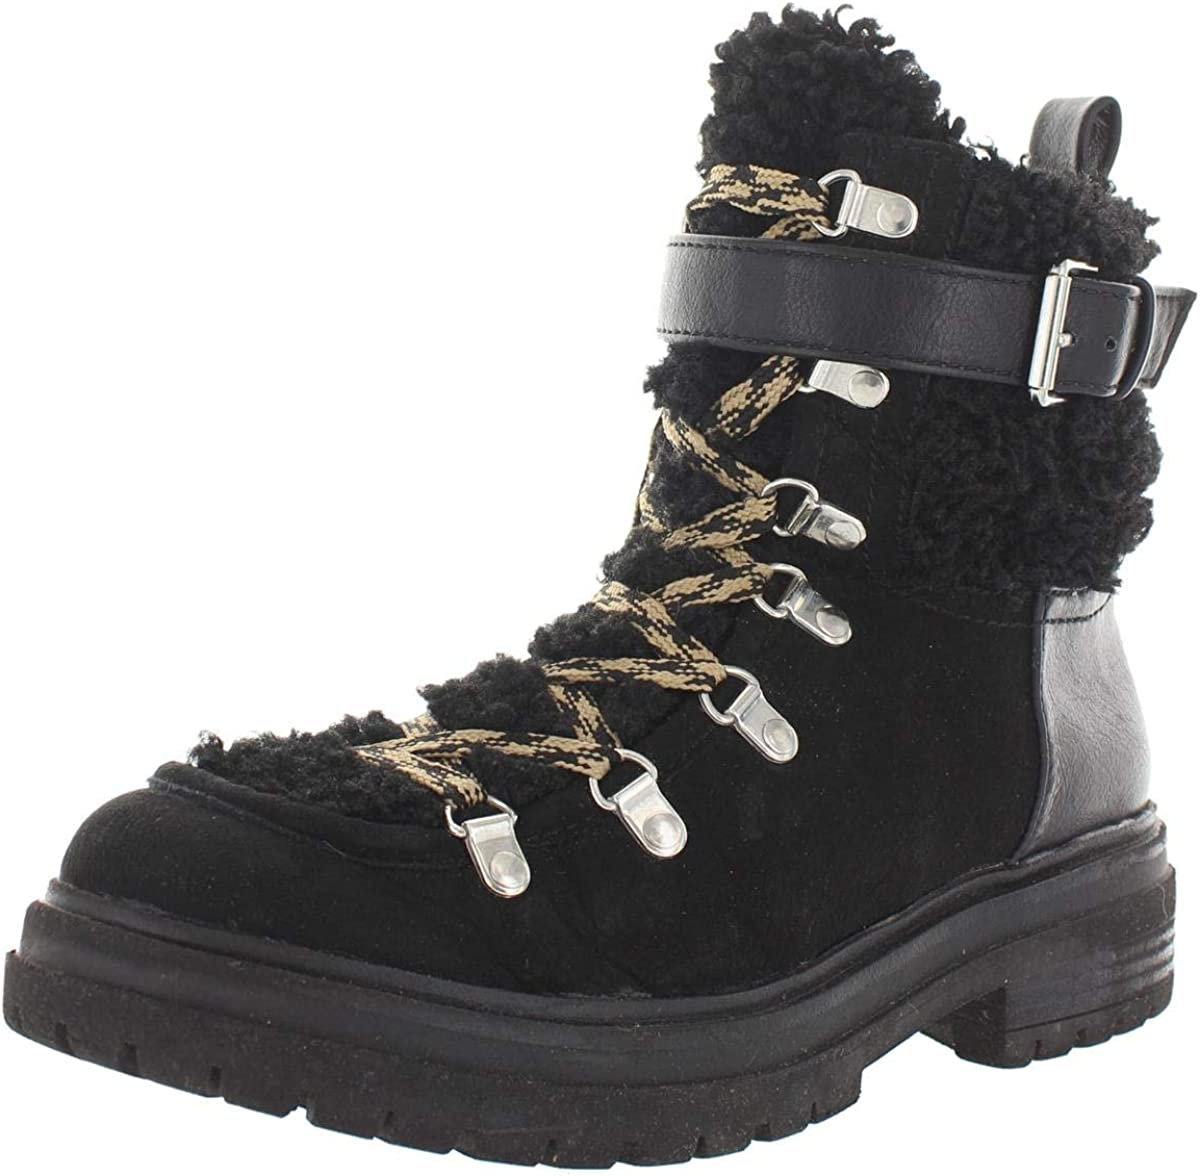 Circus by Sam Mail order Edelman Fashion Dealing full price reduction Gretchen Boot Women's